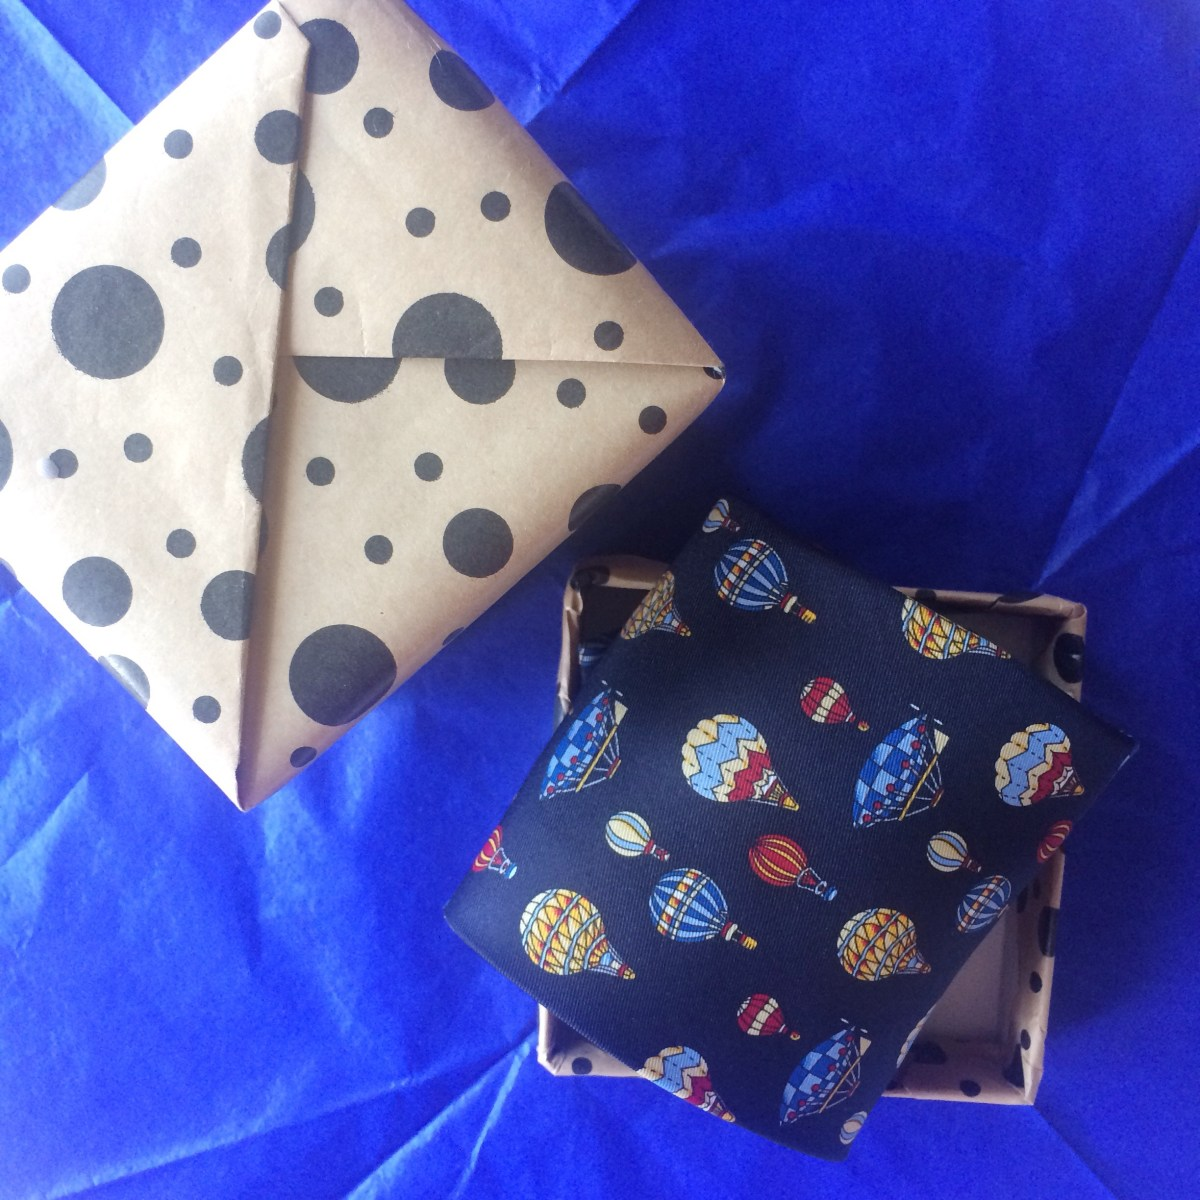 Blue tie up-cycled gift box